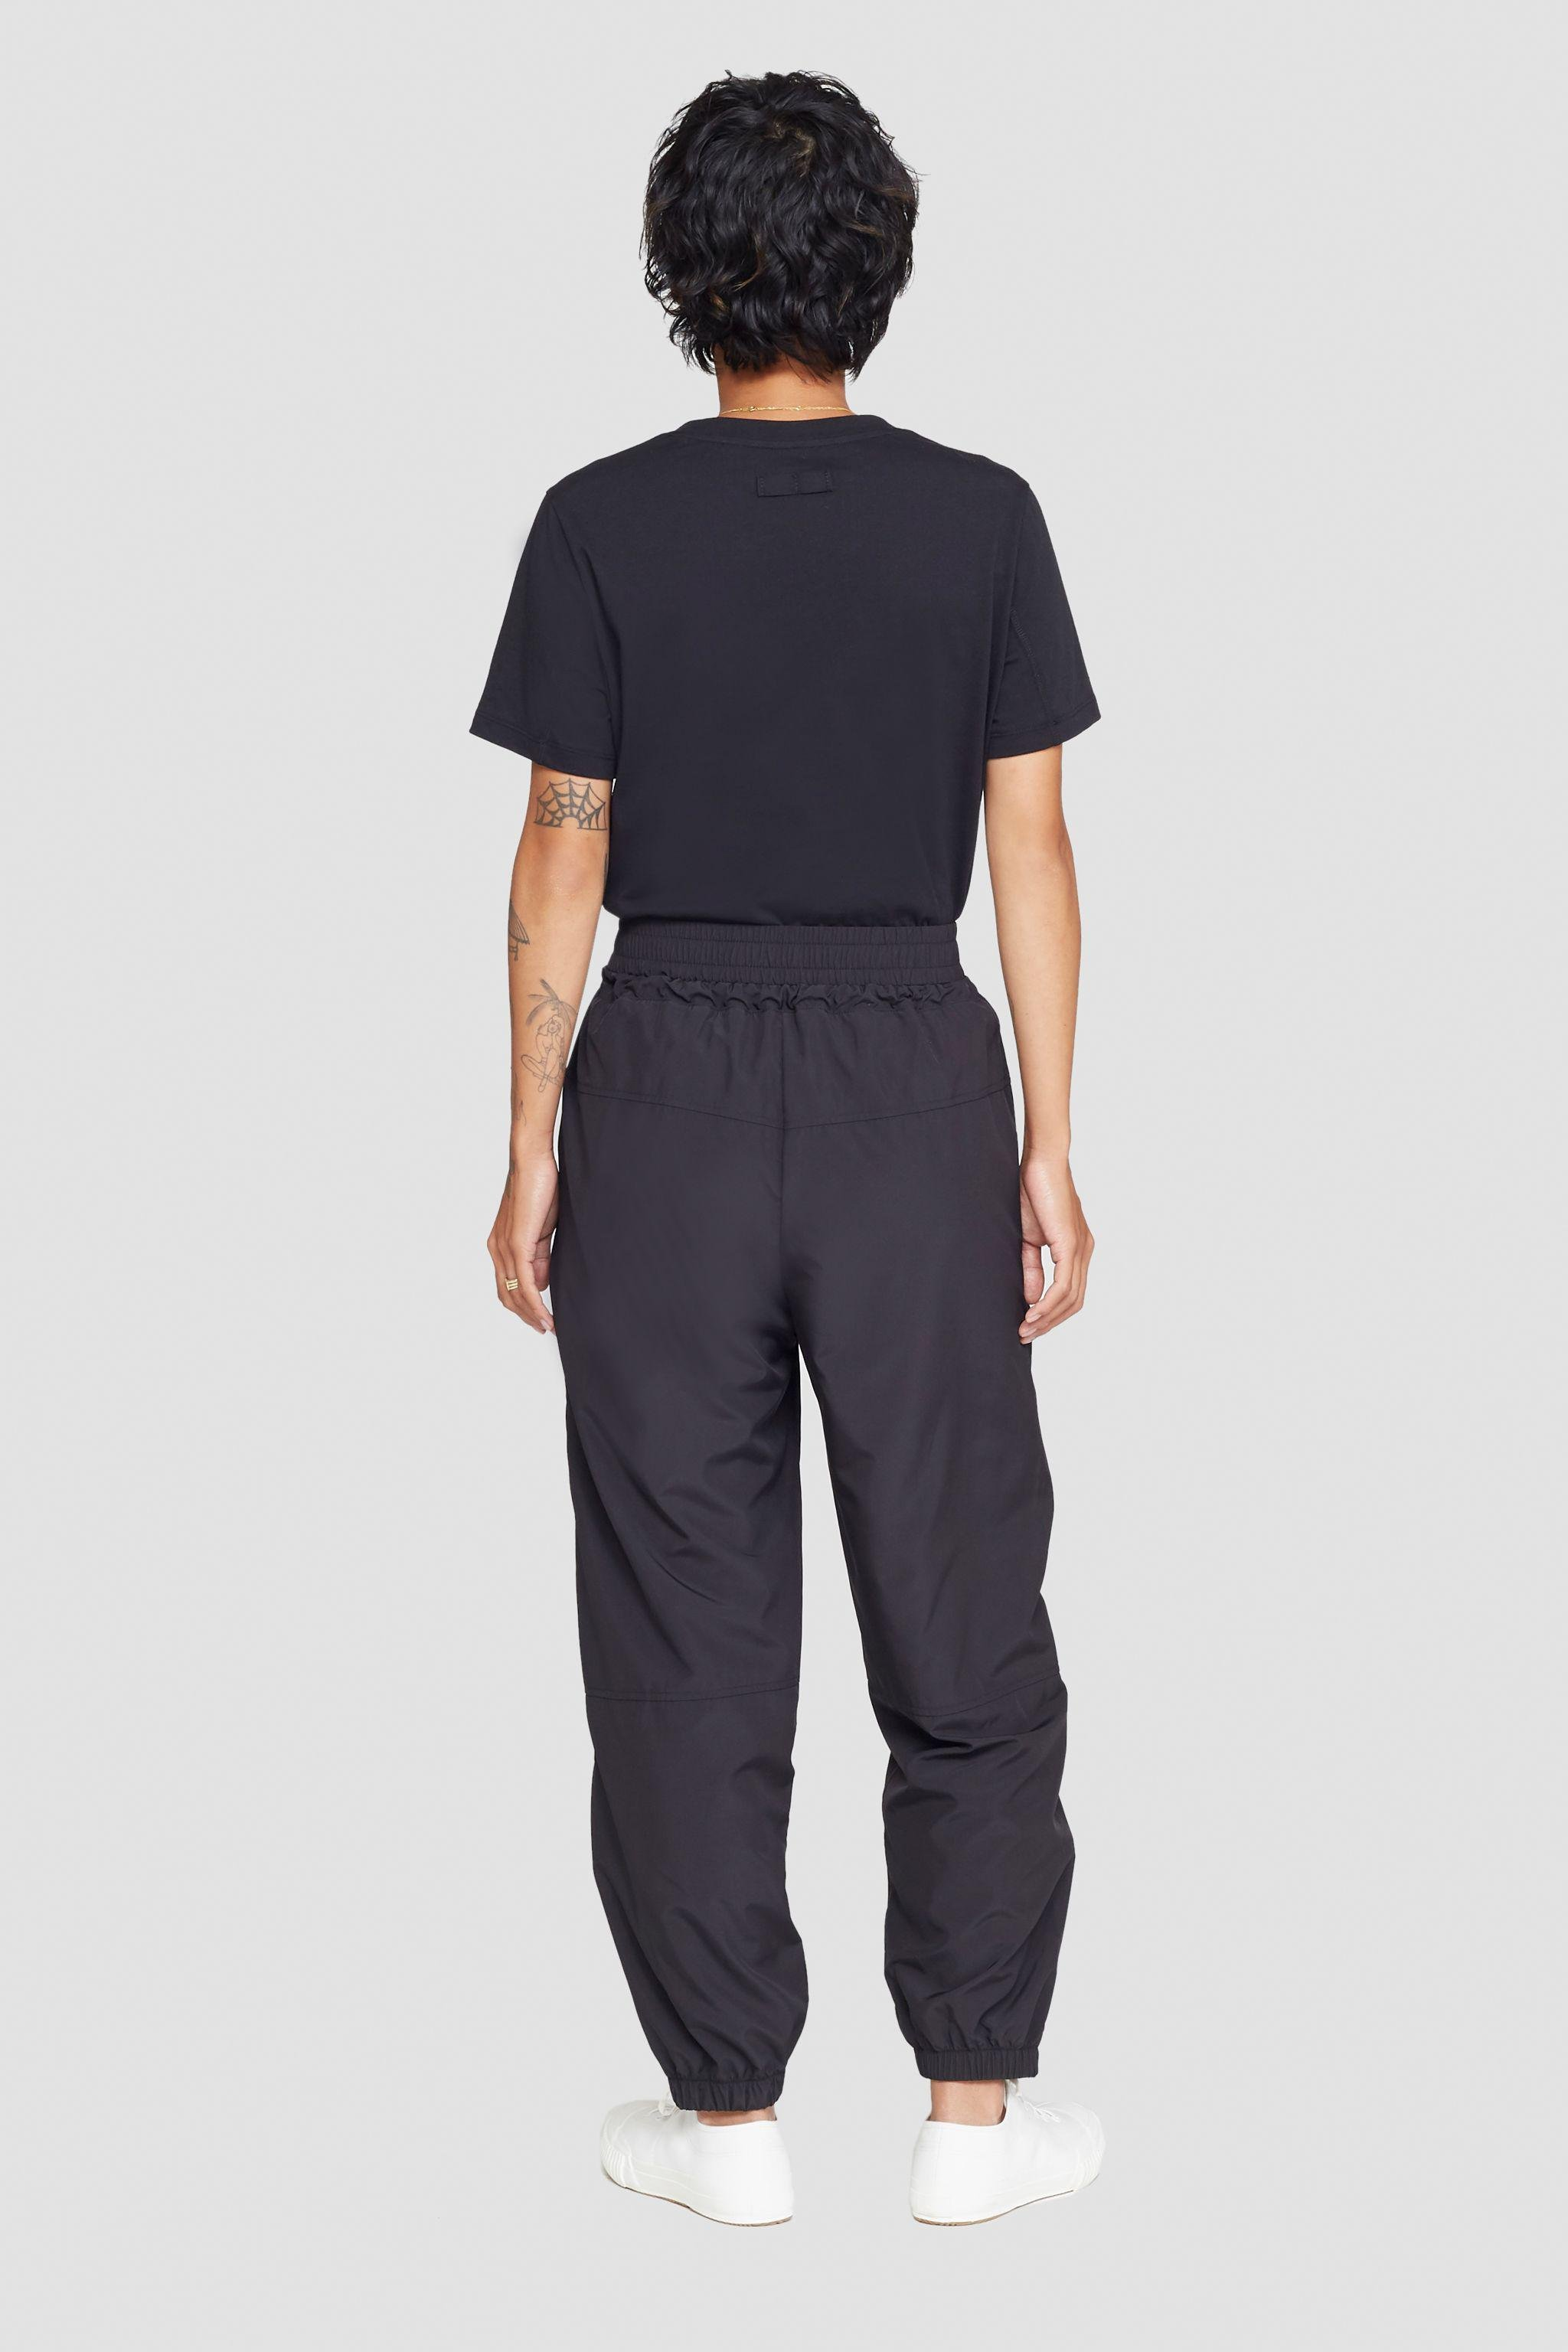 The Track-Less Pant 2